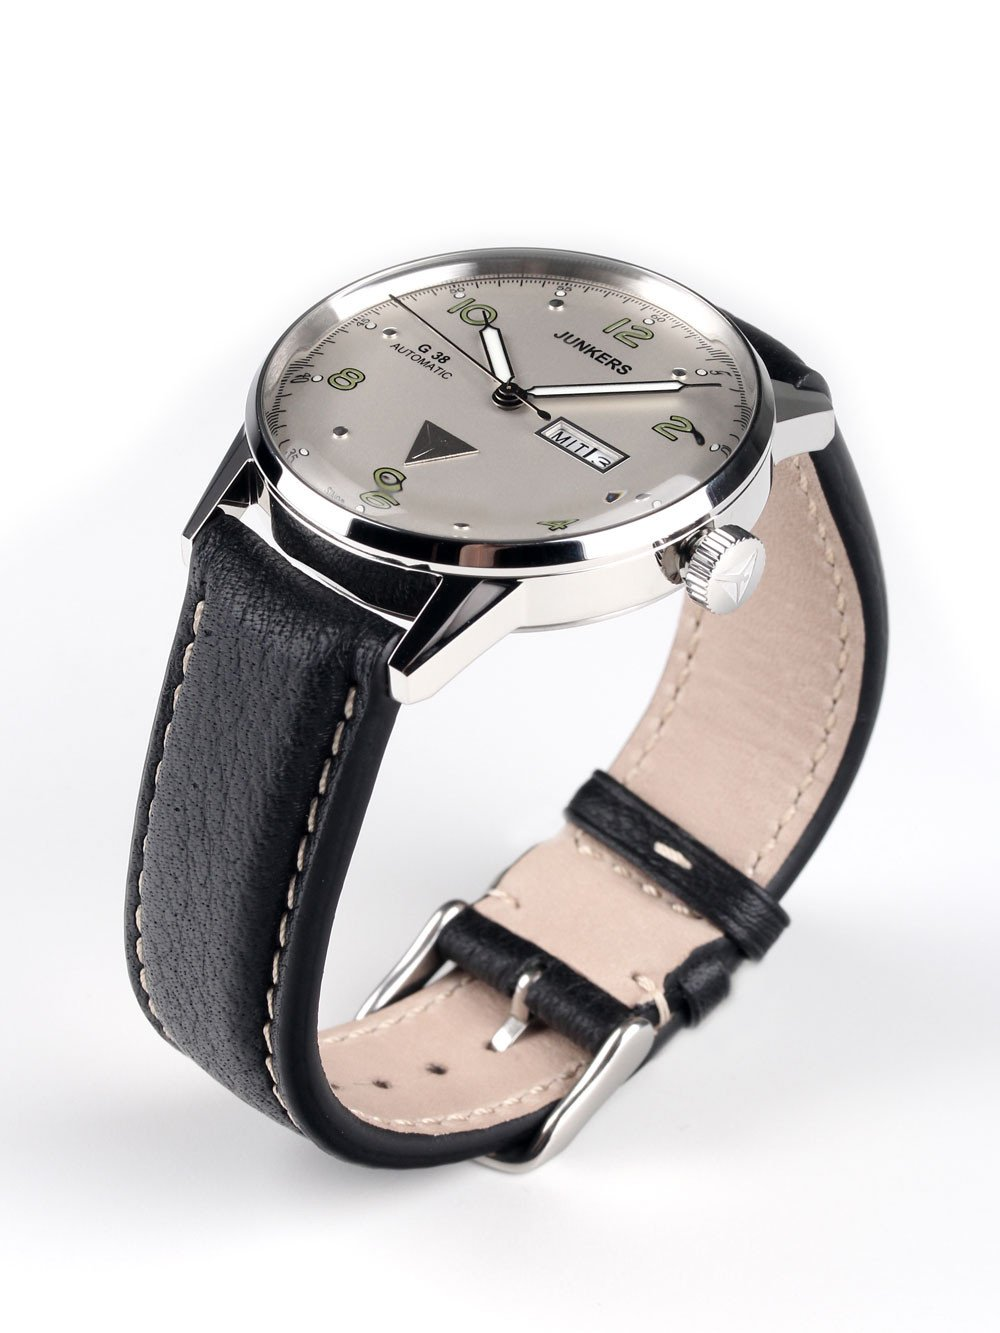 Junkers G38 6966-4 Day-Date Automatic Silver Black 10 ATM 42 mm